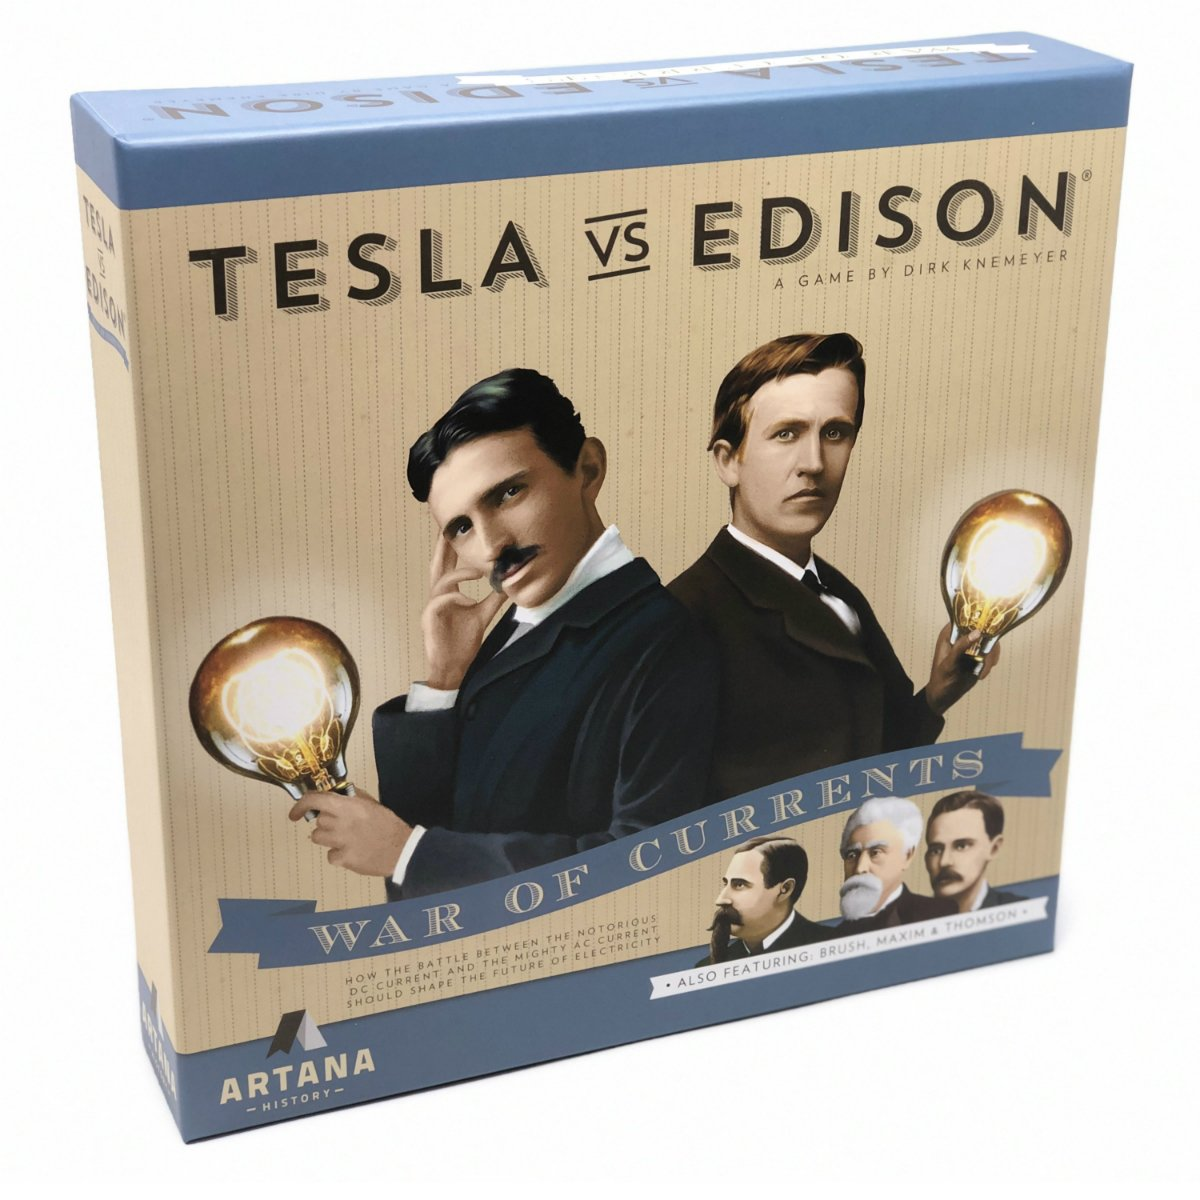 Tesla vs. Edison | War of Currents Board Game